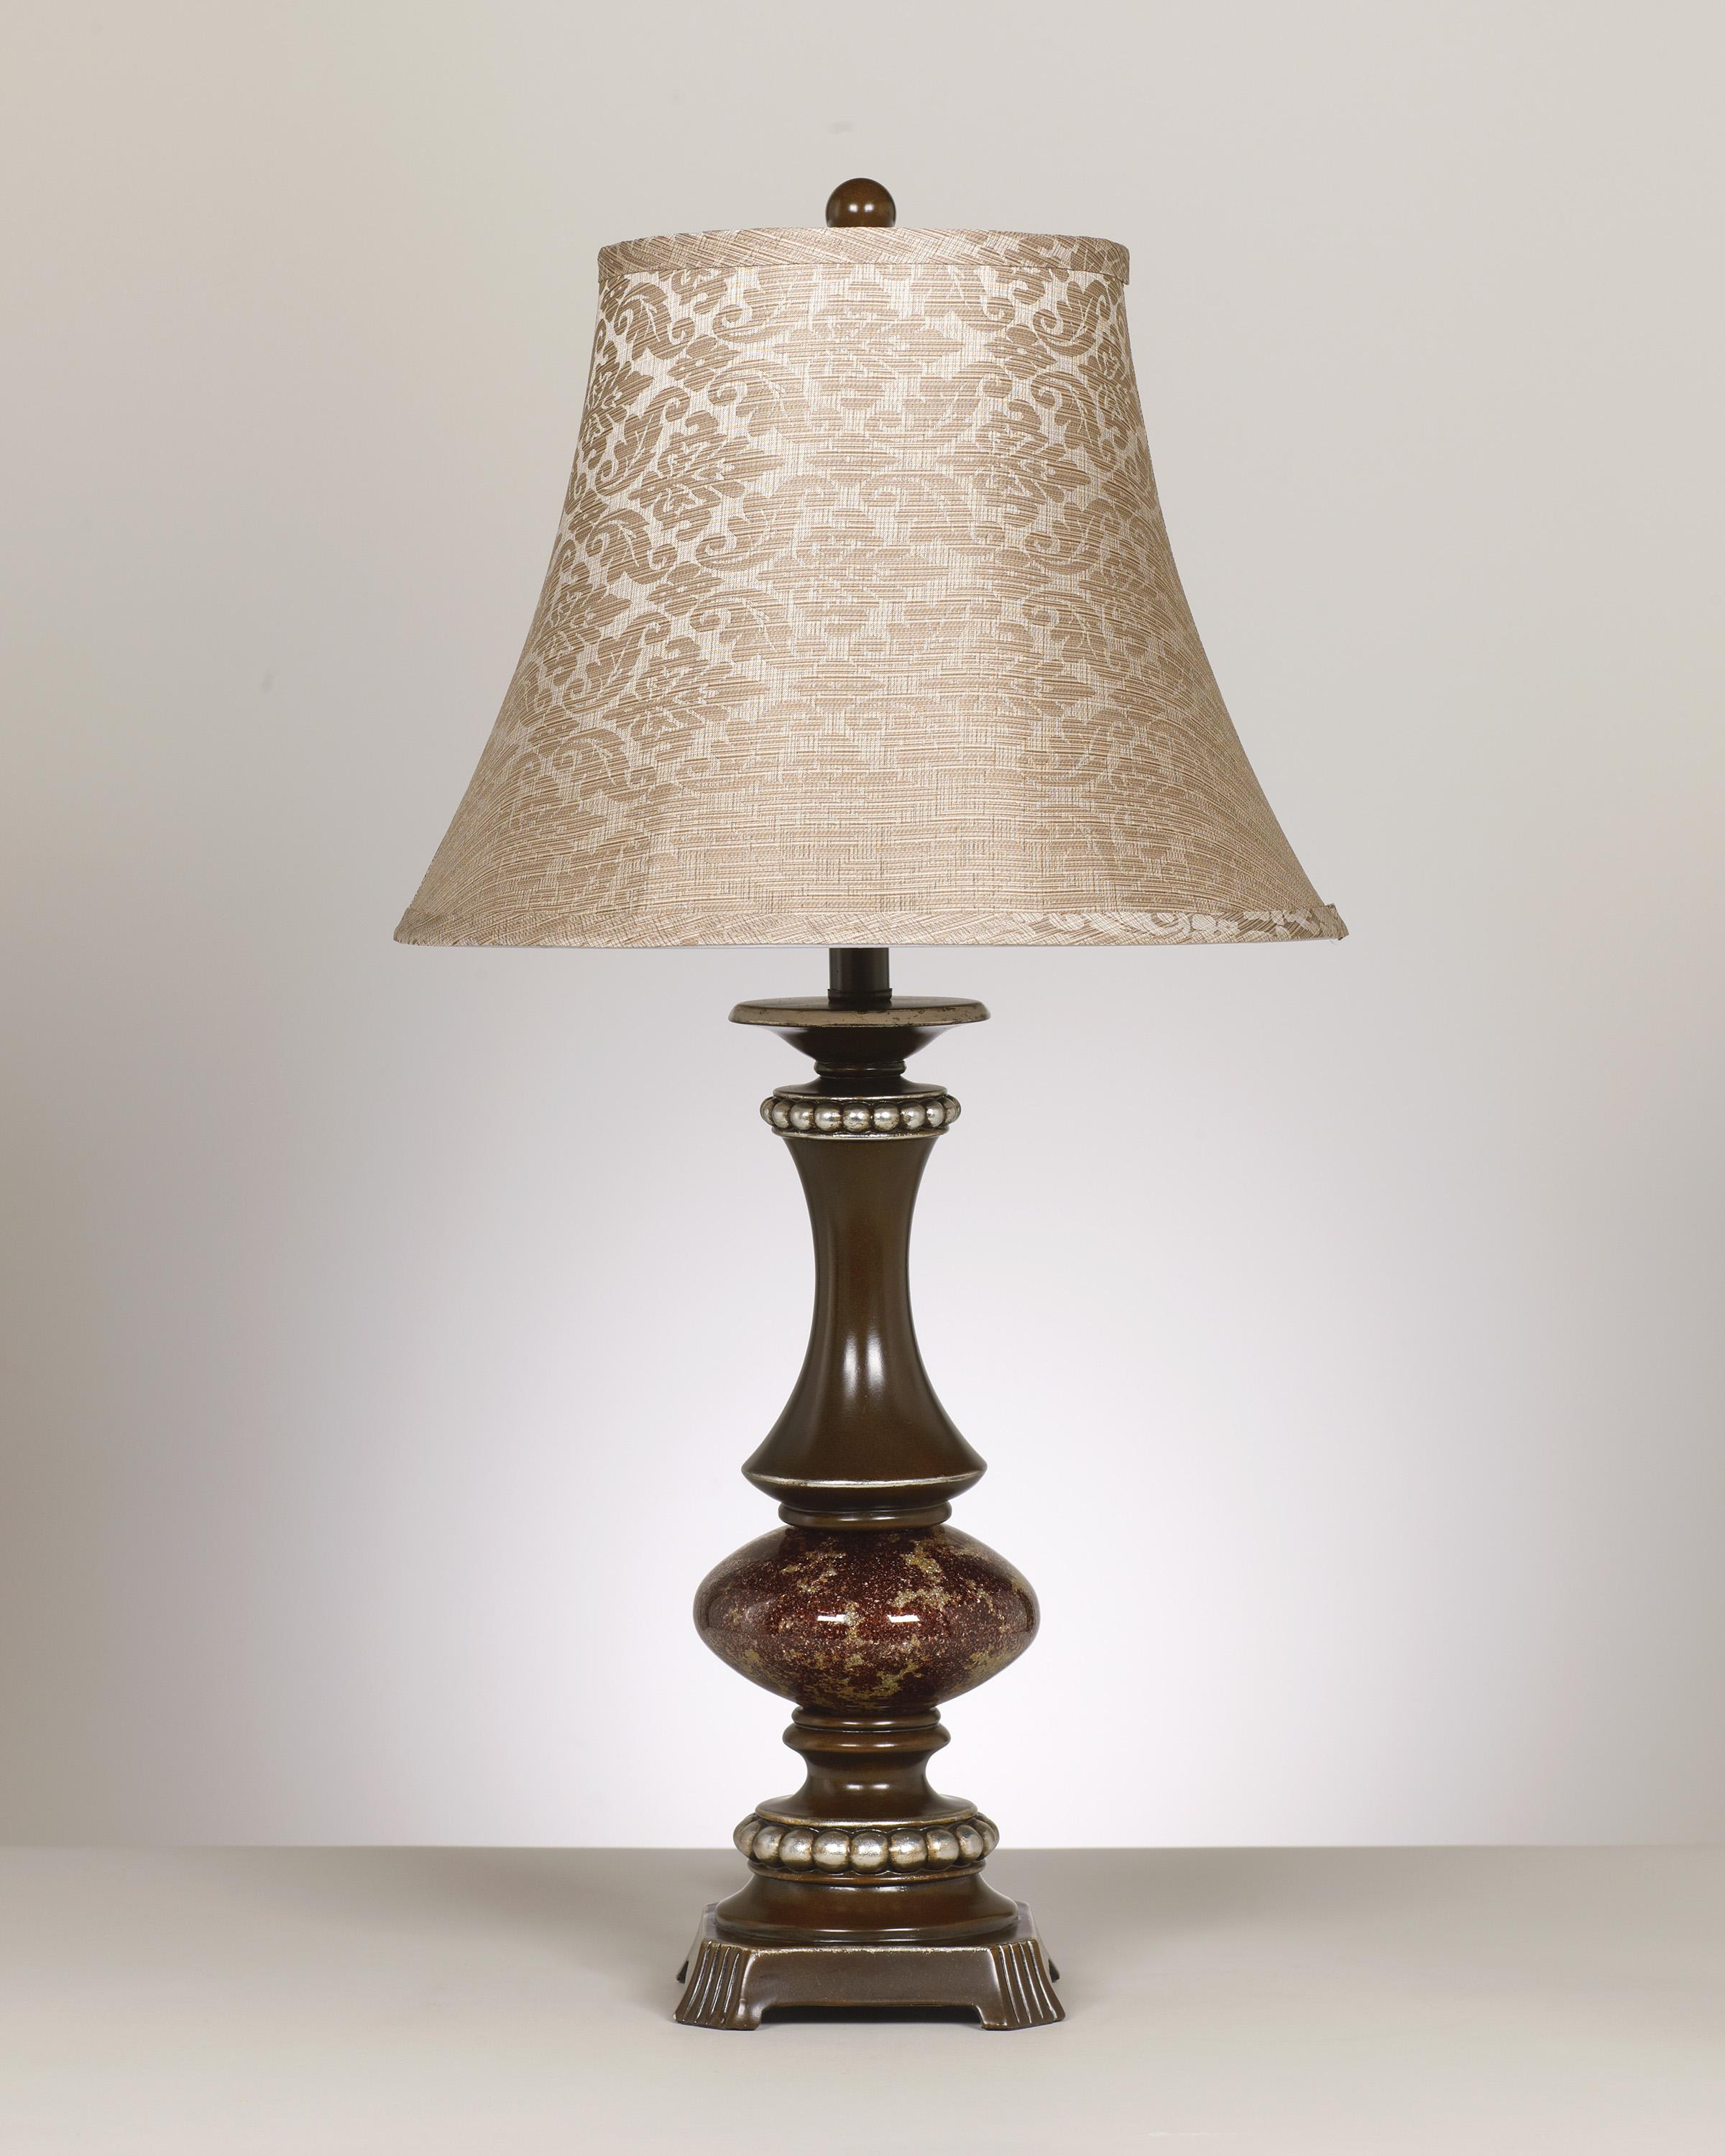 Signature Design by Ashley Lamps - Traditional Classics Rosemary Poly Table Lamp - Item Number: L443784